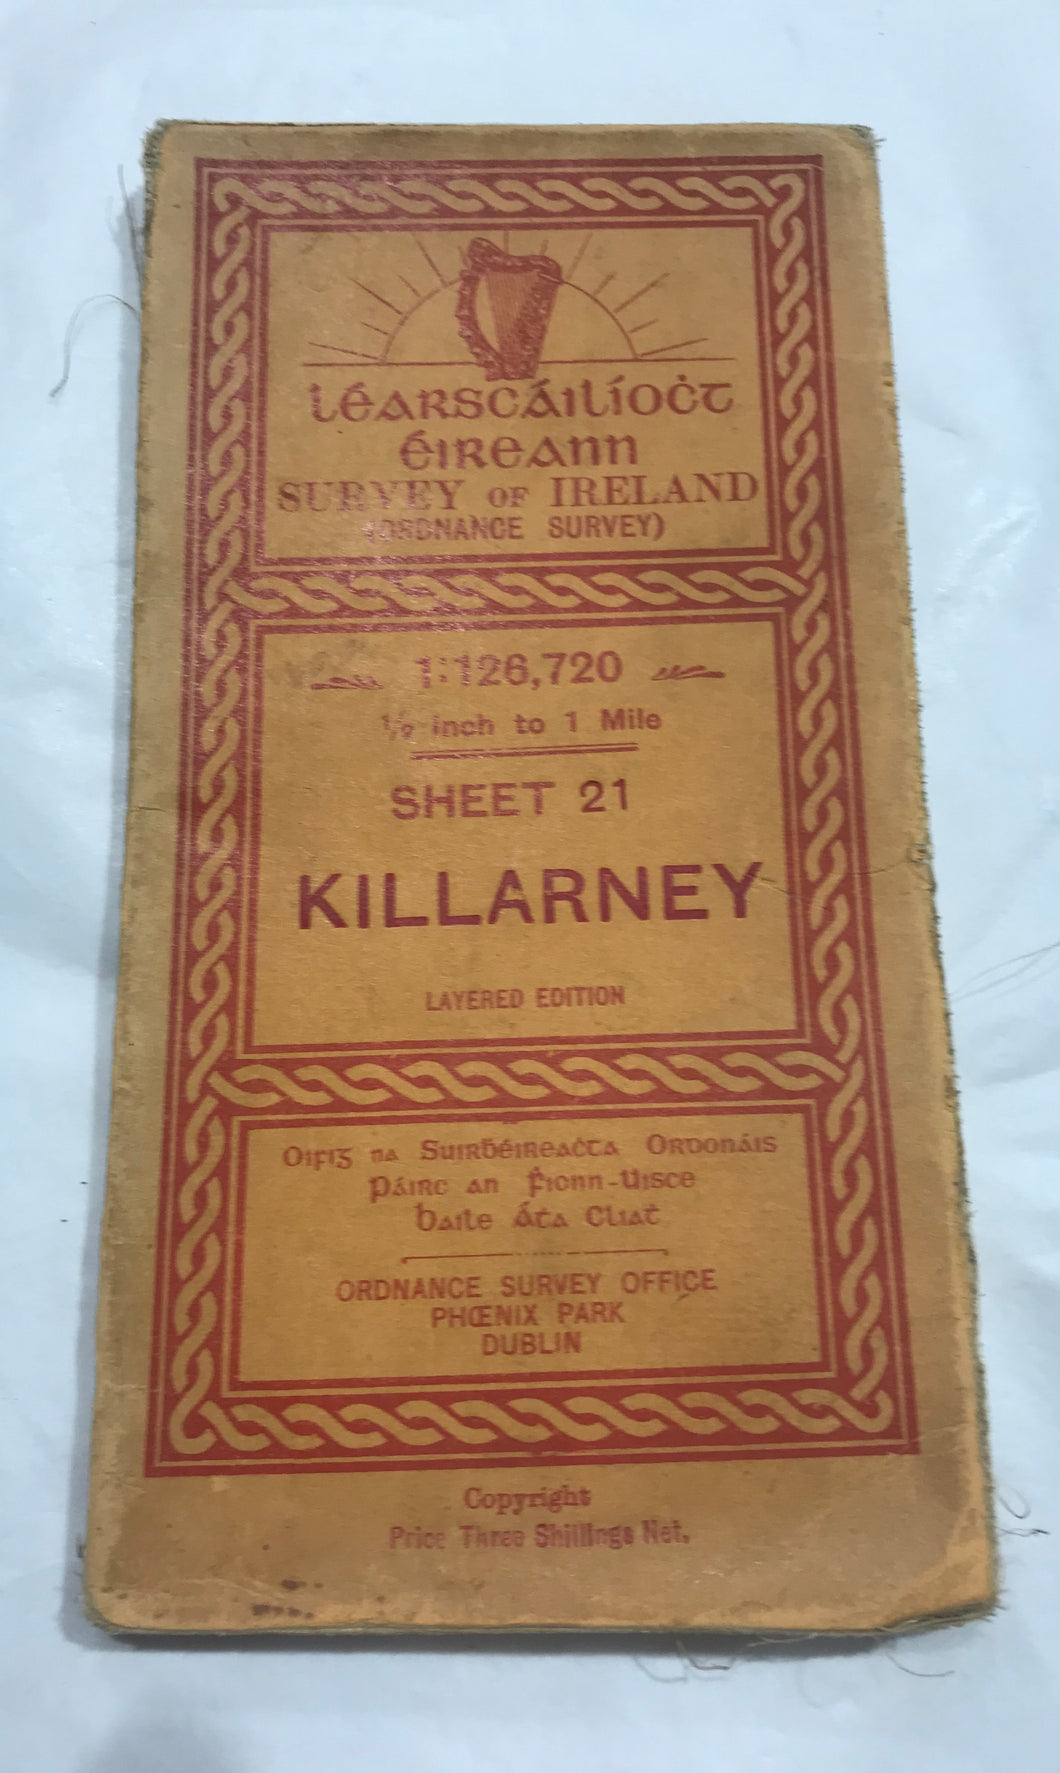 Ordnance Survey of Ireland map of Killarney.